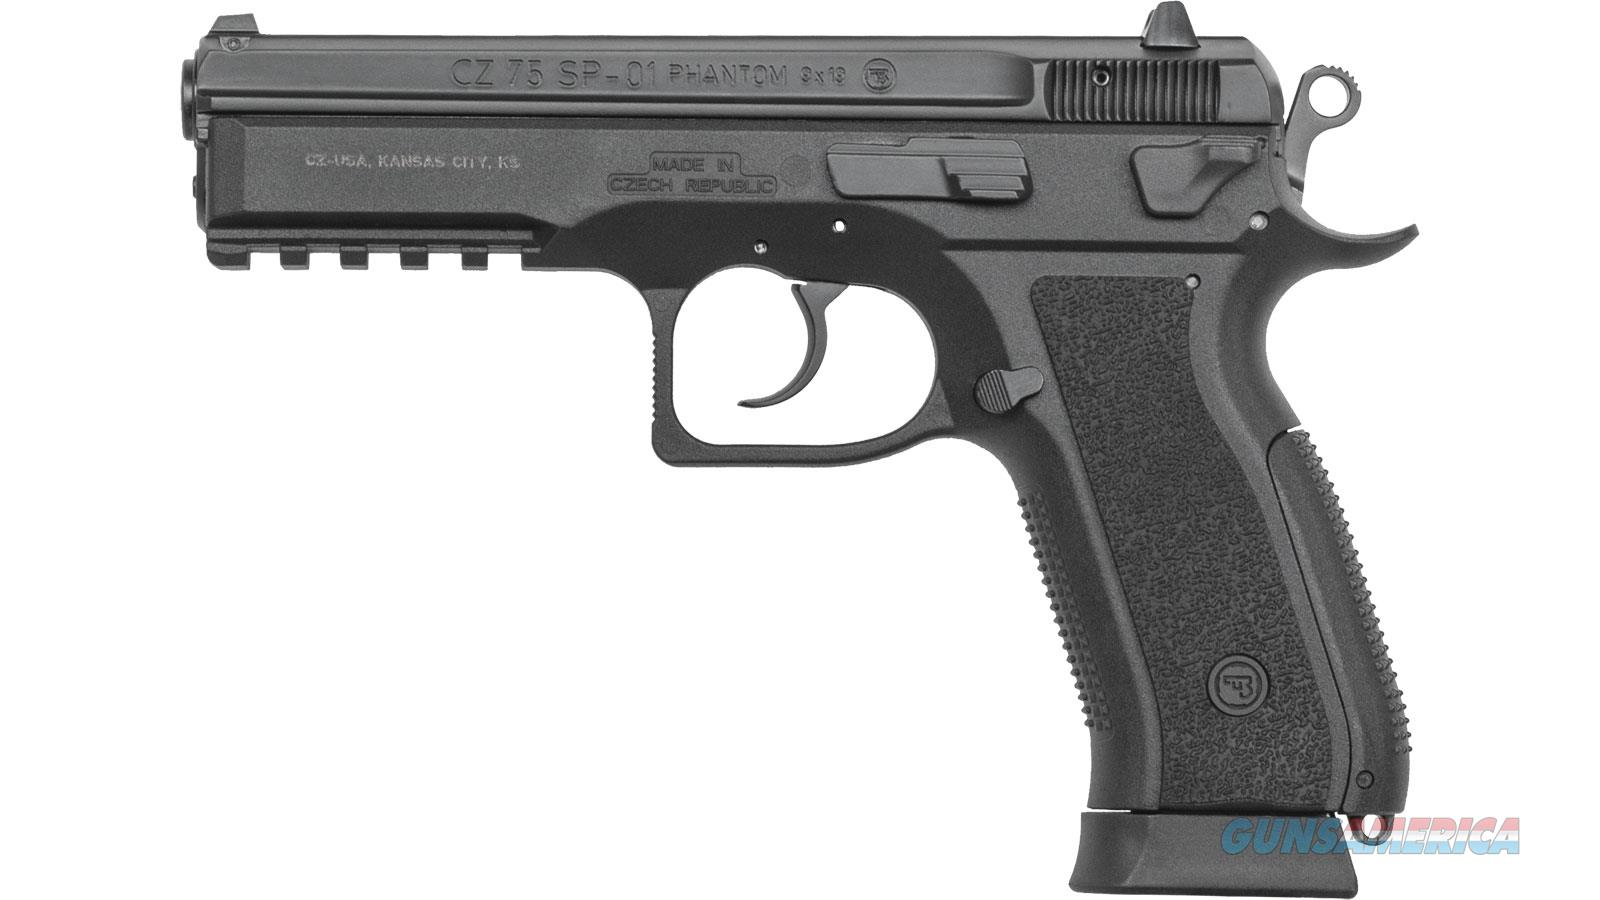 Cz Usa 75 Sp-01 Phantom 9Mm Fs 18-Shot Black Polymer 91258  Guns > Pistols > C Misc Pistols